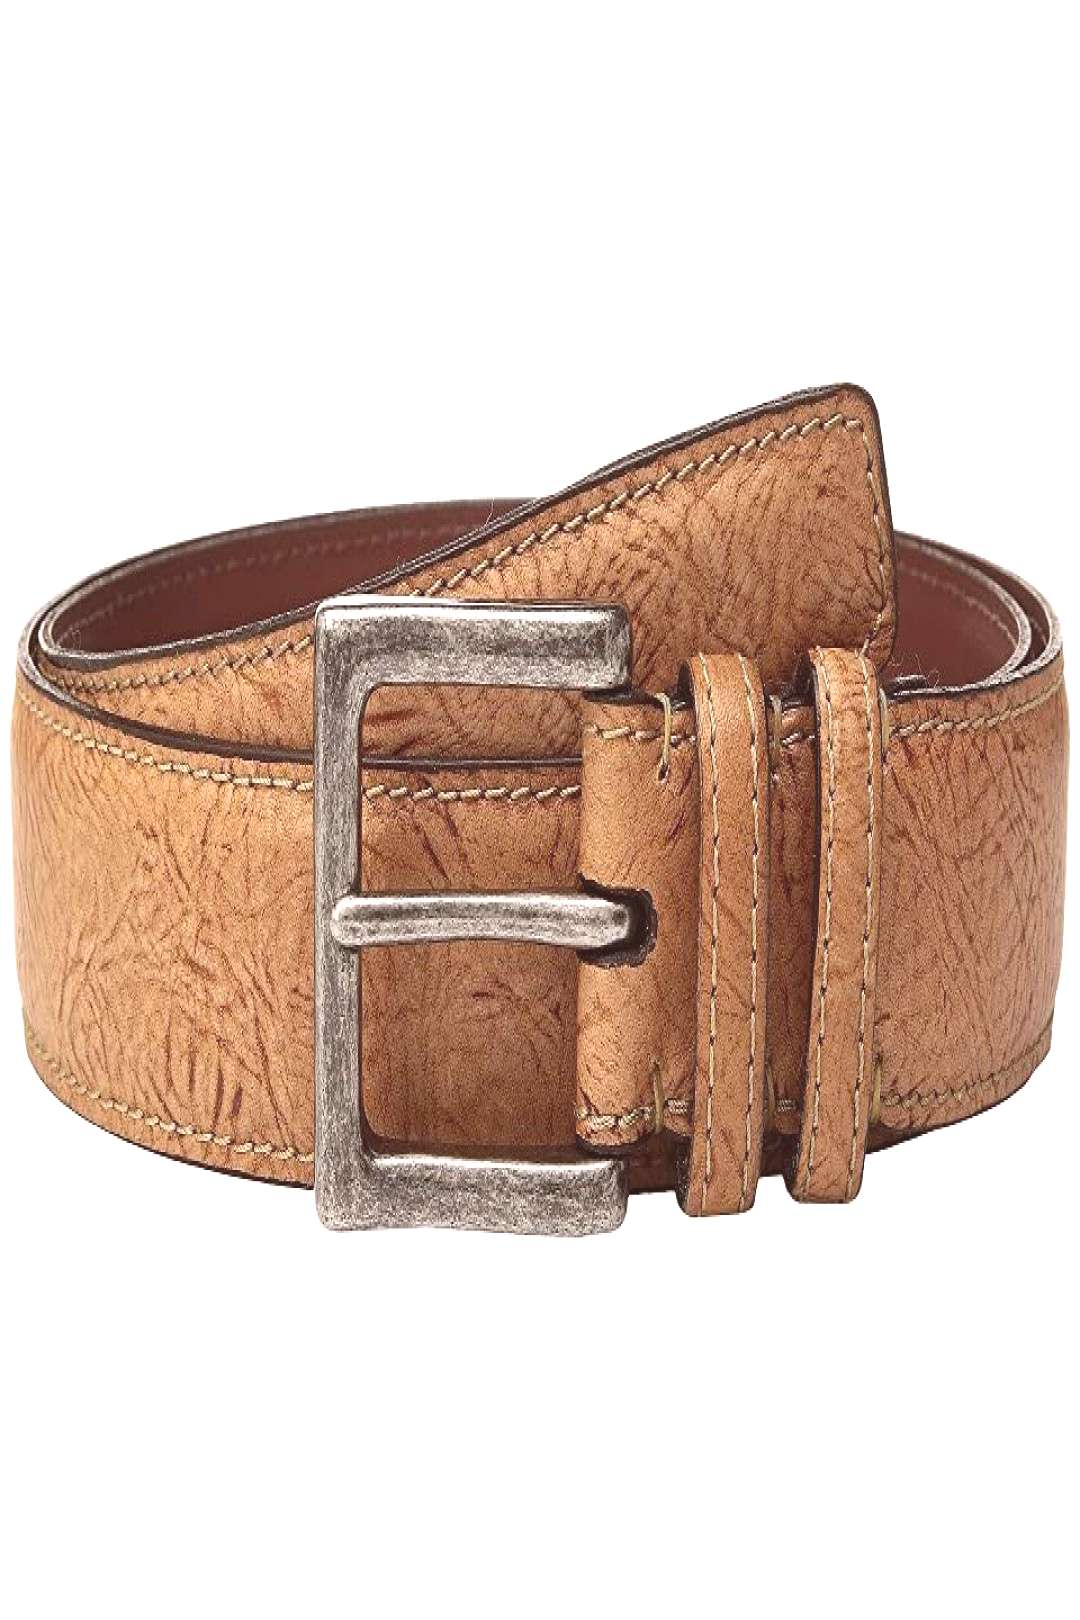 Torino Leather Co. 38mm Shrunken Calf Leather (Saddle) Mens Belts. Elevate your casual look with t